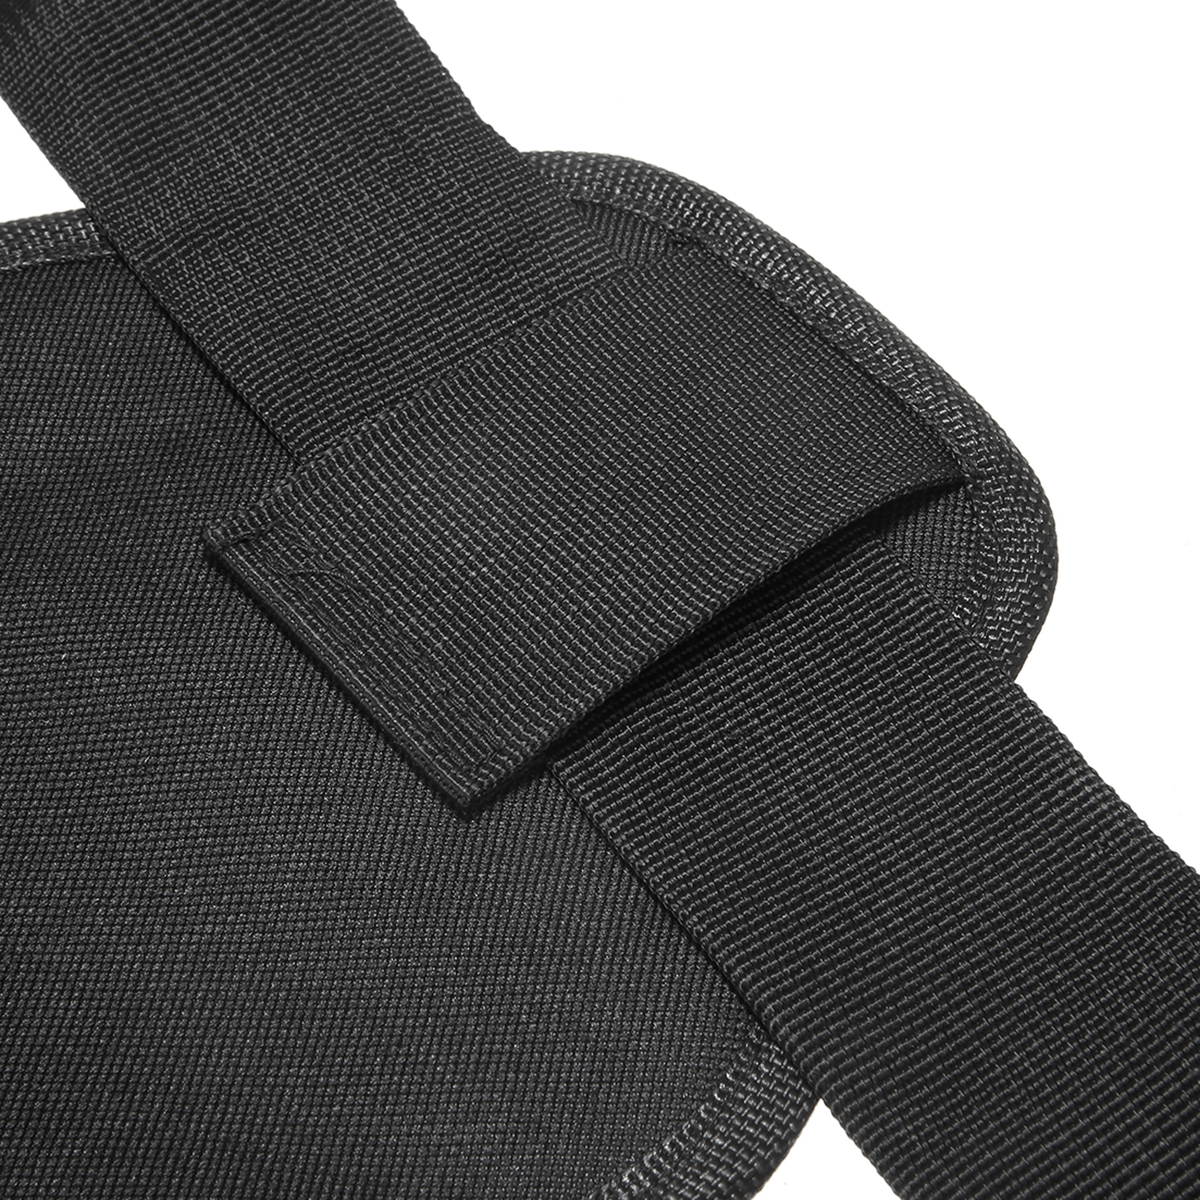 New Multifunctional Tool Bags Electrician Bags Tool Oxford Cloth Pouch Bag Waist Belt Durable Hardware Organizer in Tool Bags from Tools